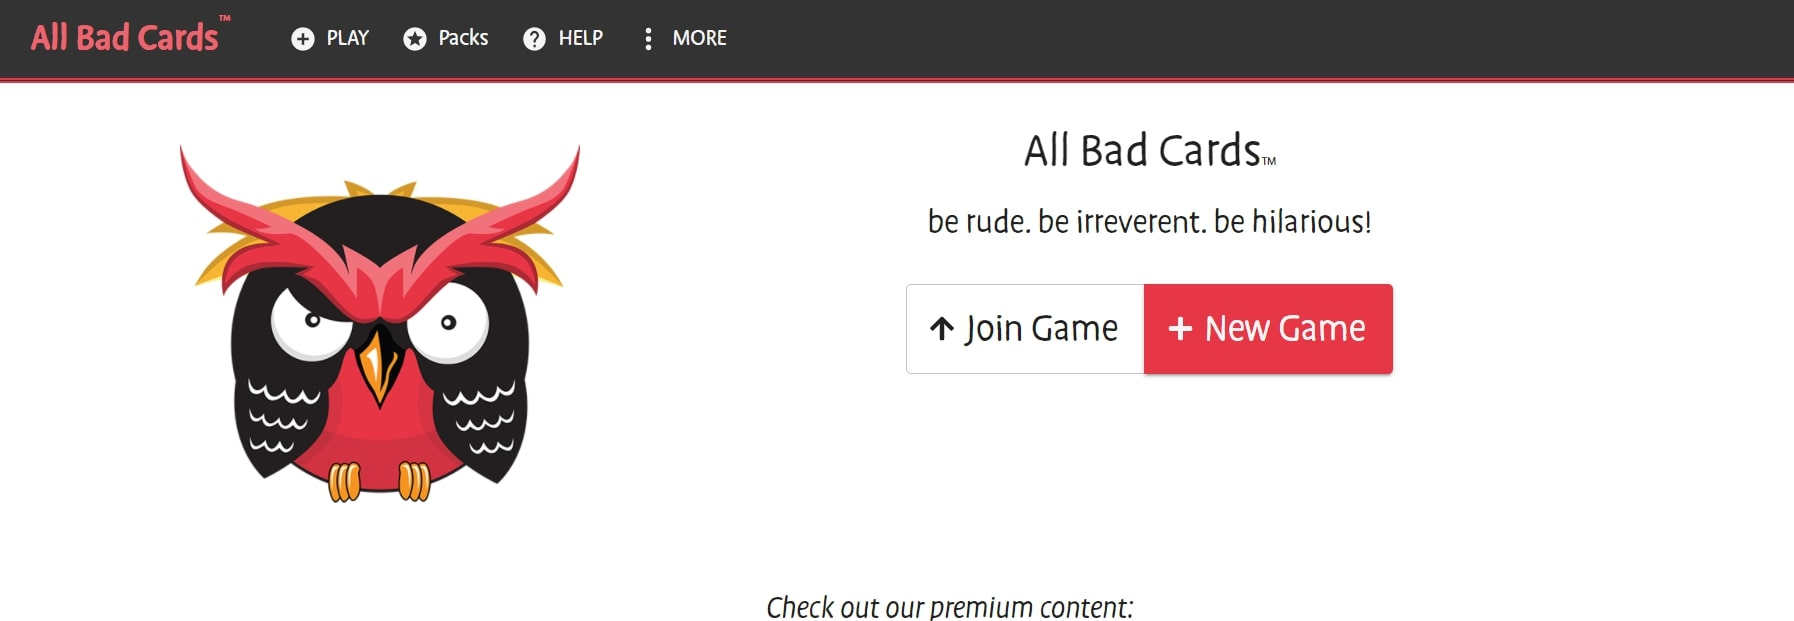 cards-against-humanity-online-multiplayer-2021